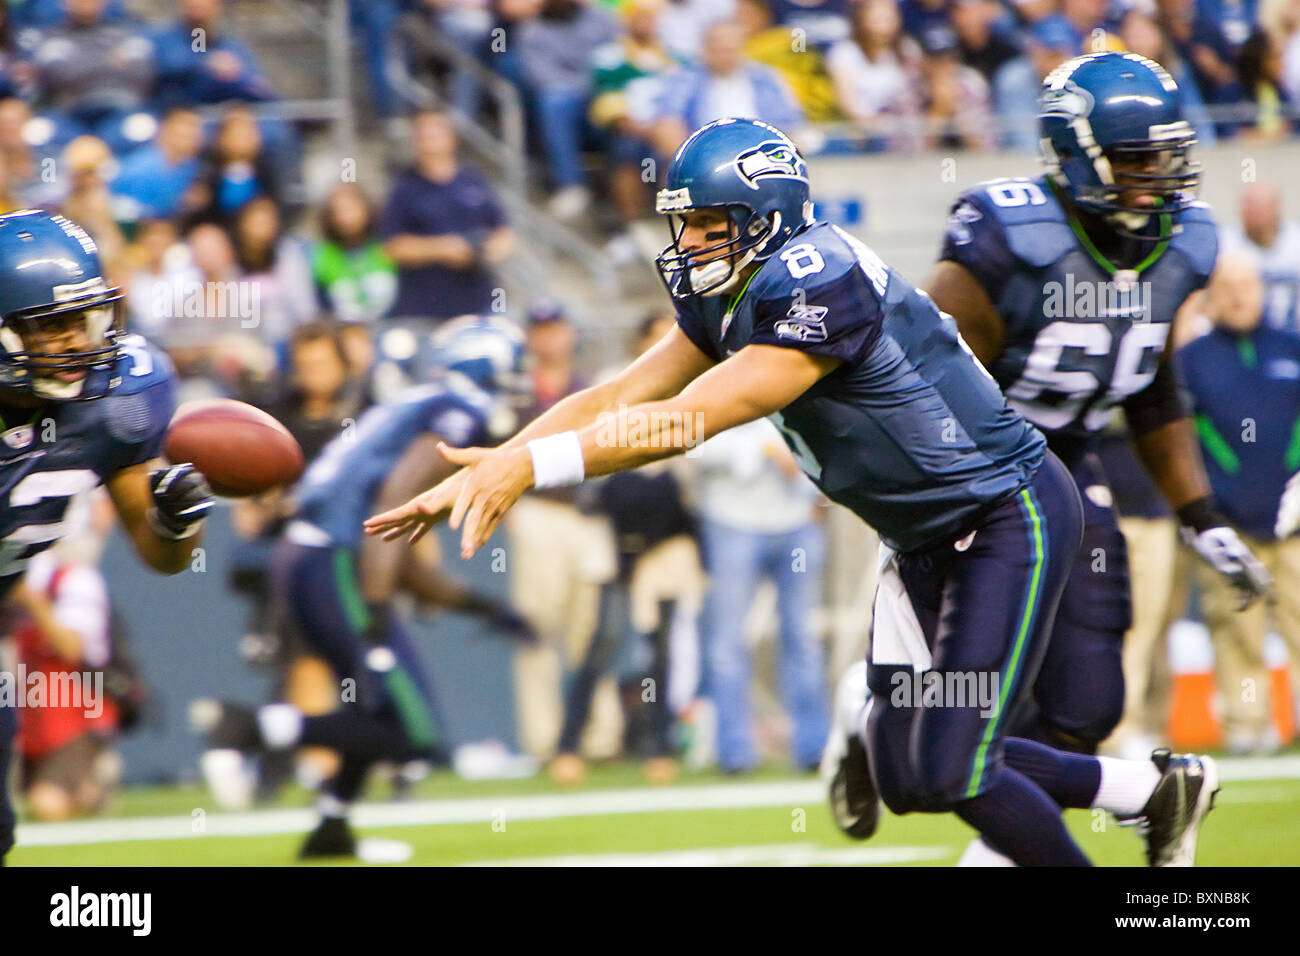 Seattle Seahawks Quarterback Matt Hasselbeck pitches the football to a teammate - Stock Image